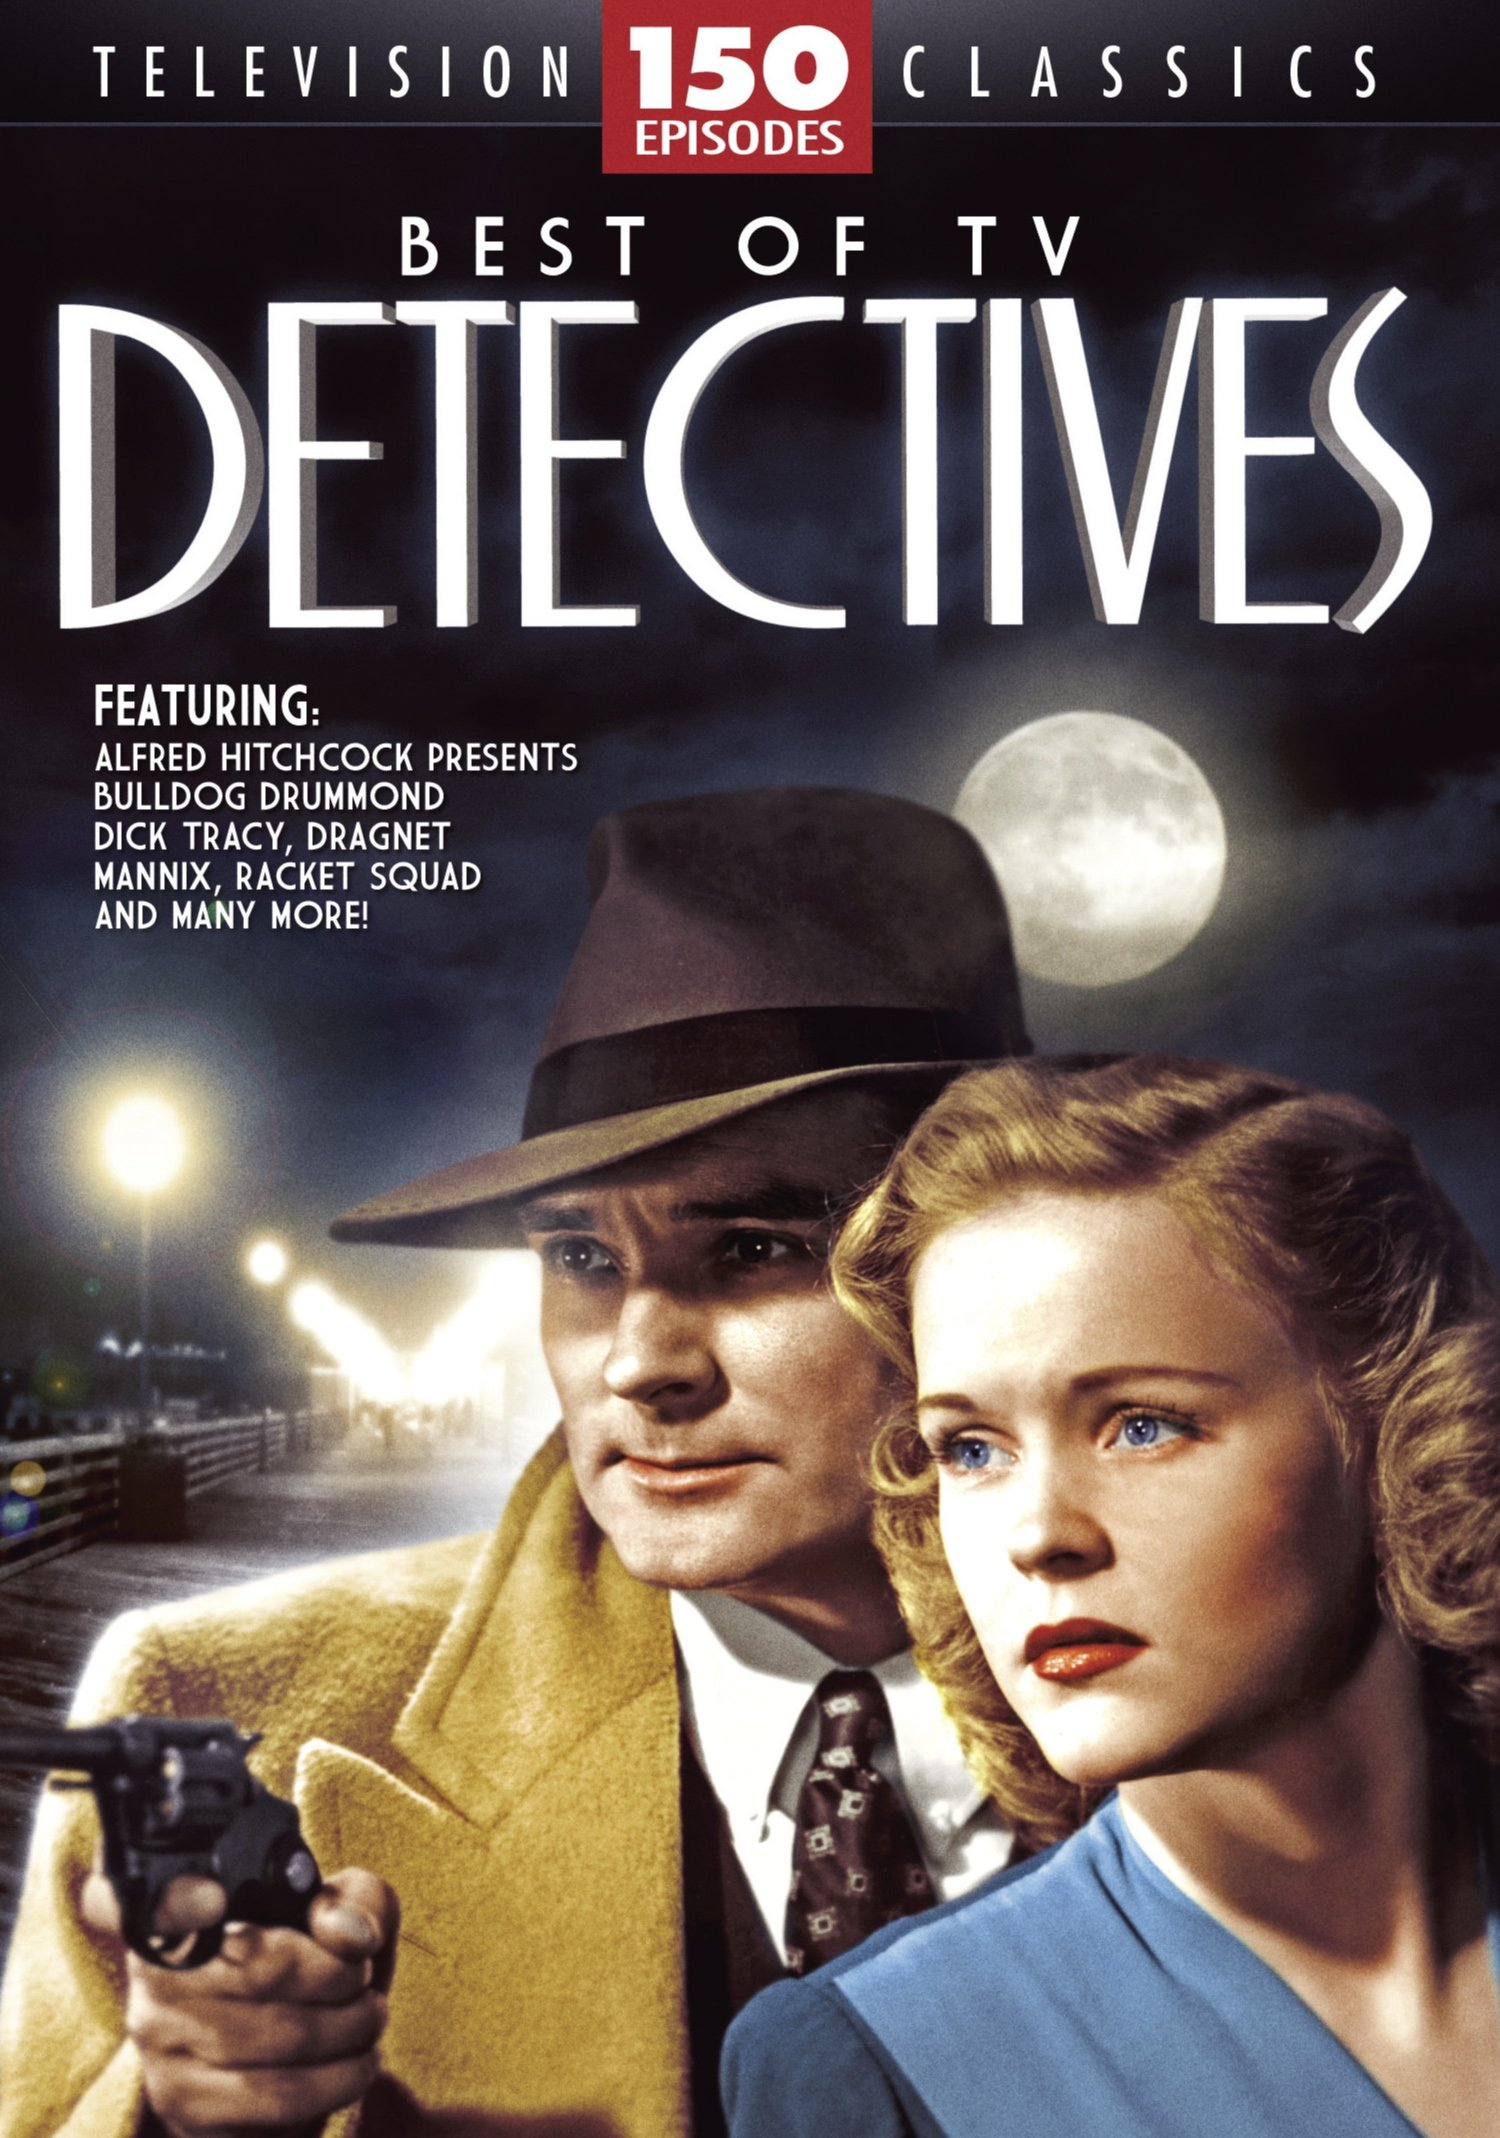 Best of TV Detectives 150 Episodes by DIGITAL1STOP